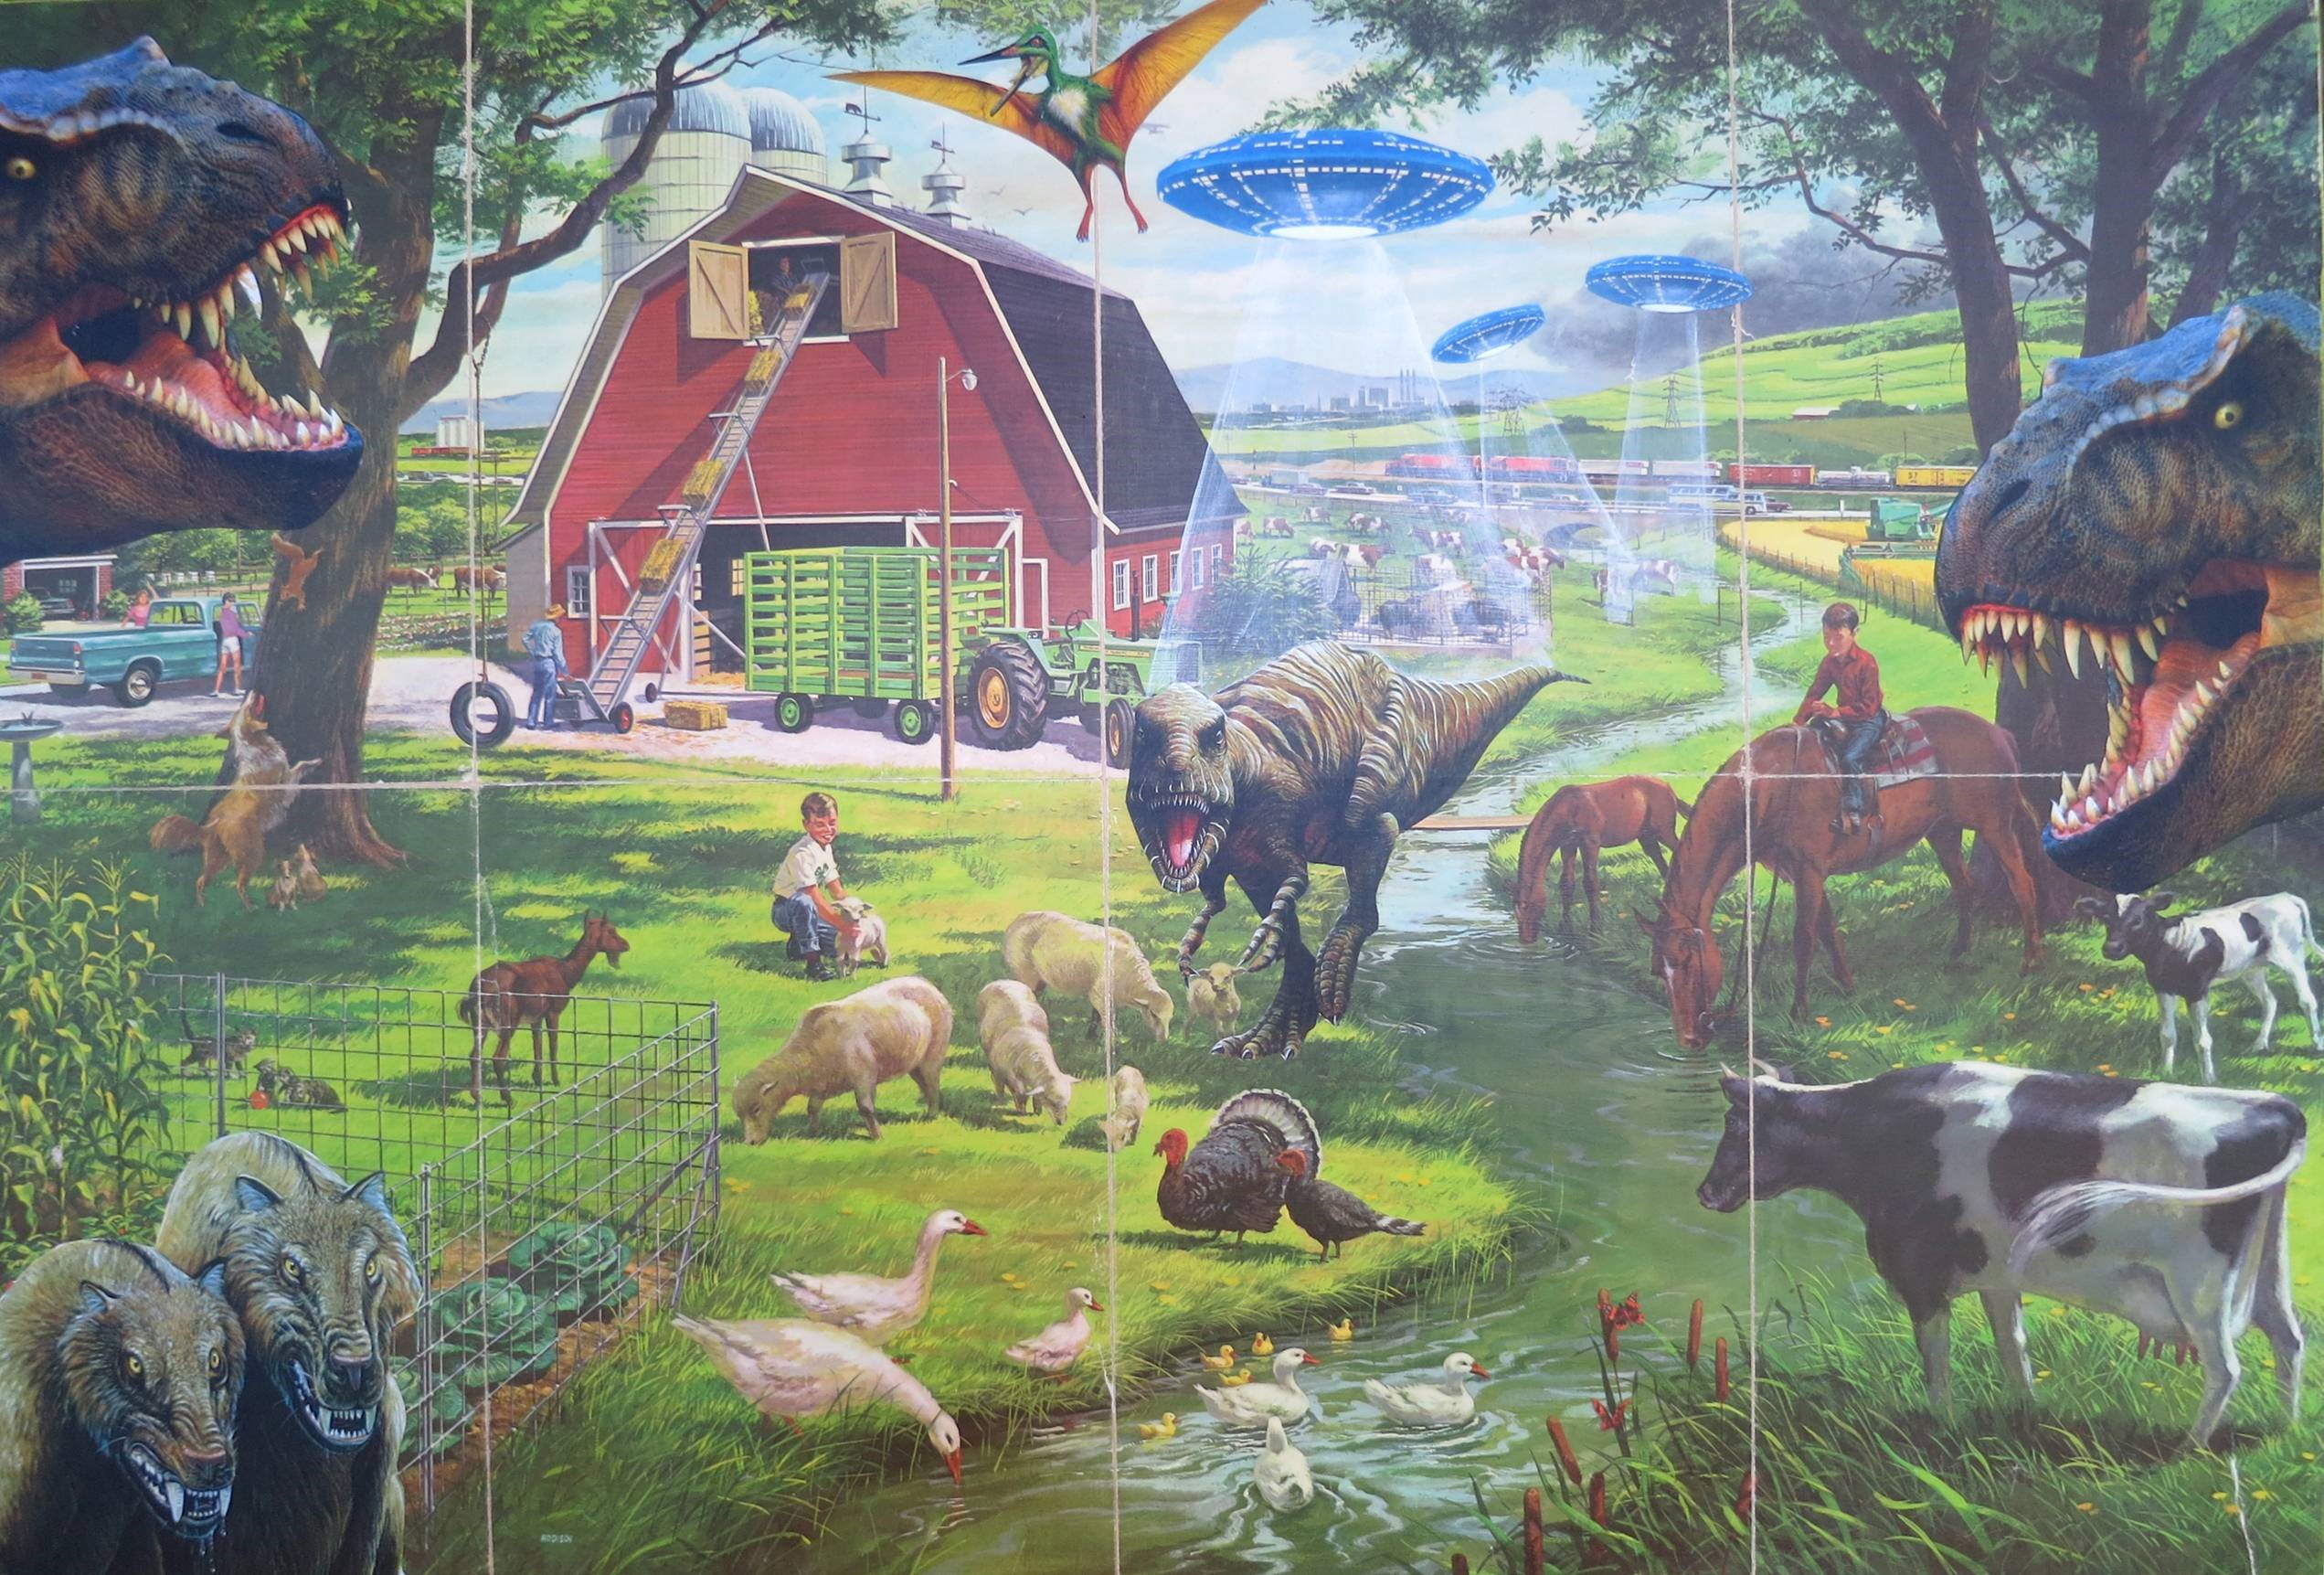 A Day on the Farm 36x24 Collage on wood panel